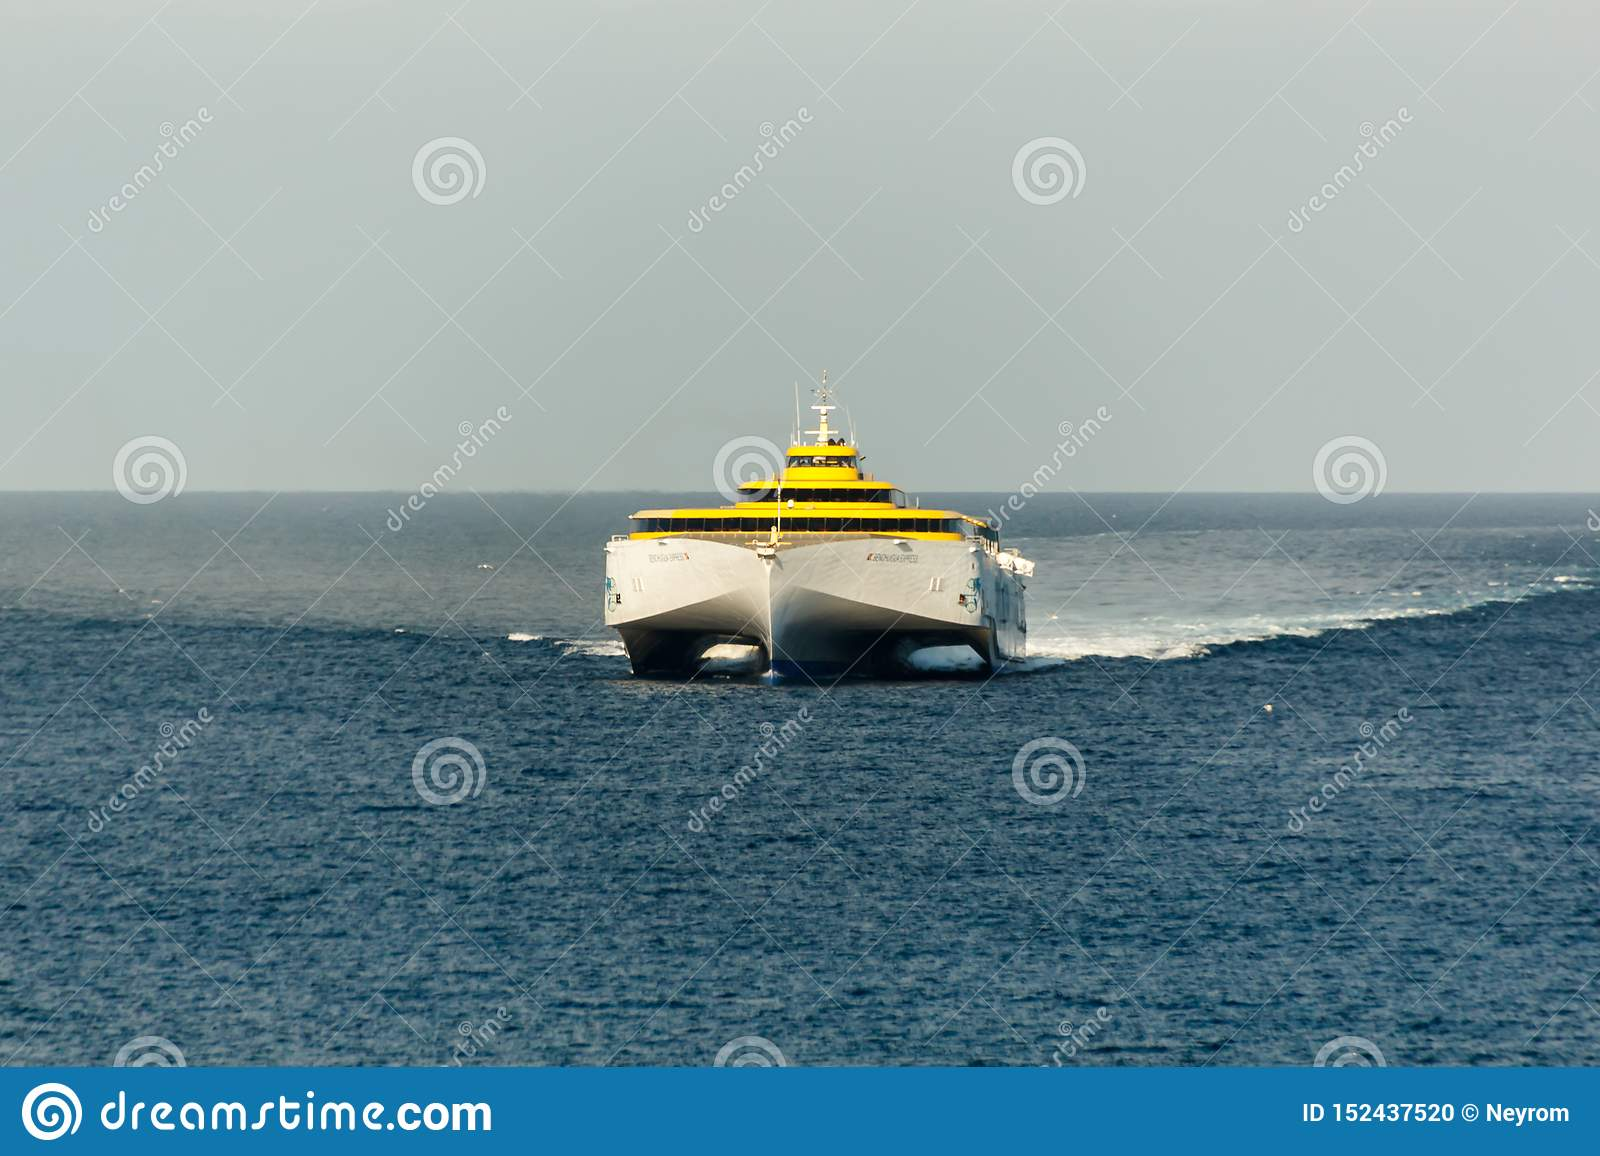 High-speed ferry going on a head-on course, shot from a long distance. Crossed waves and a smoky sky over the horizon line